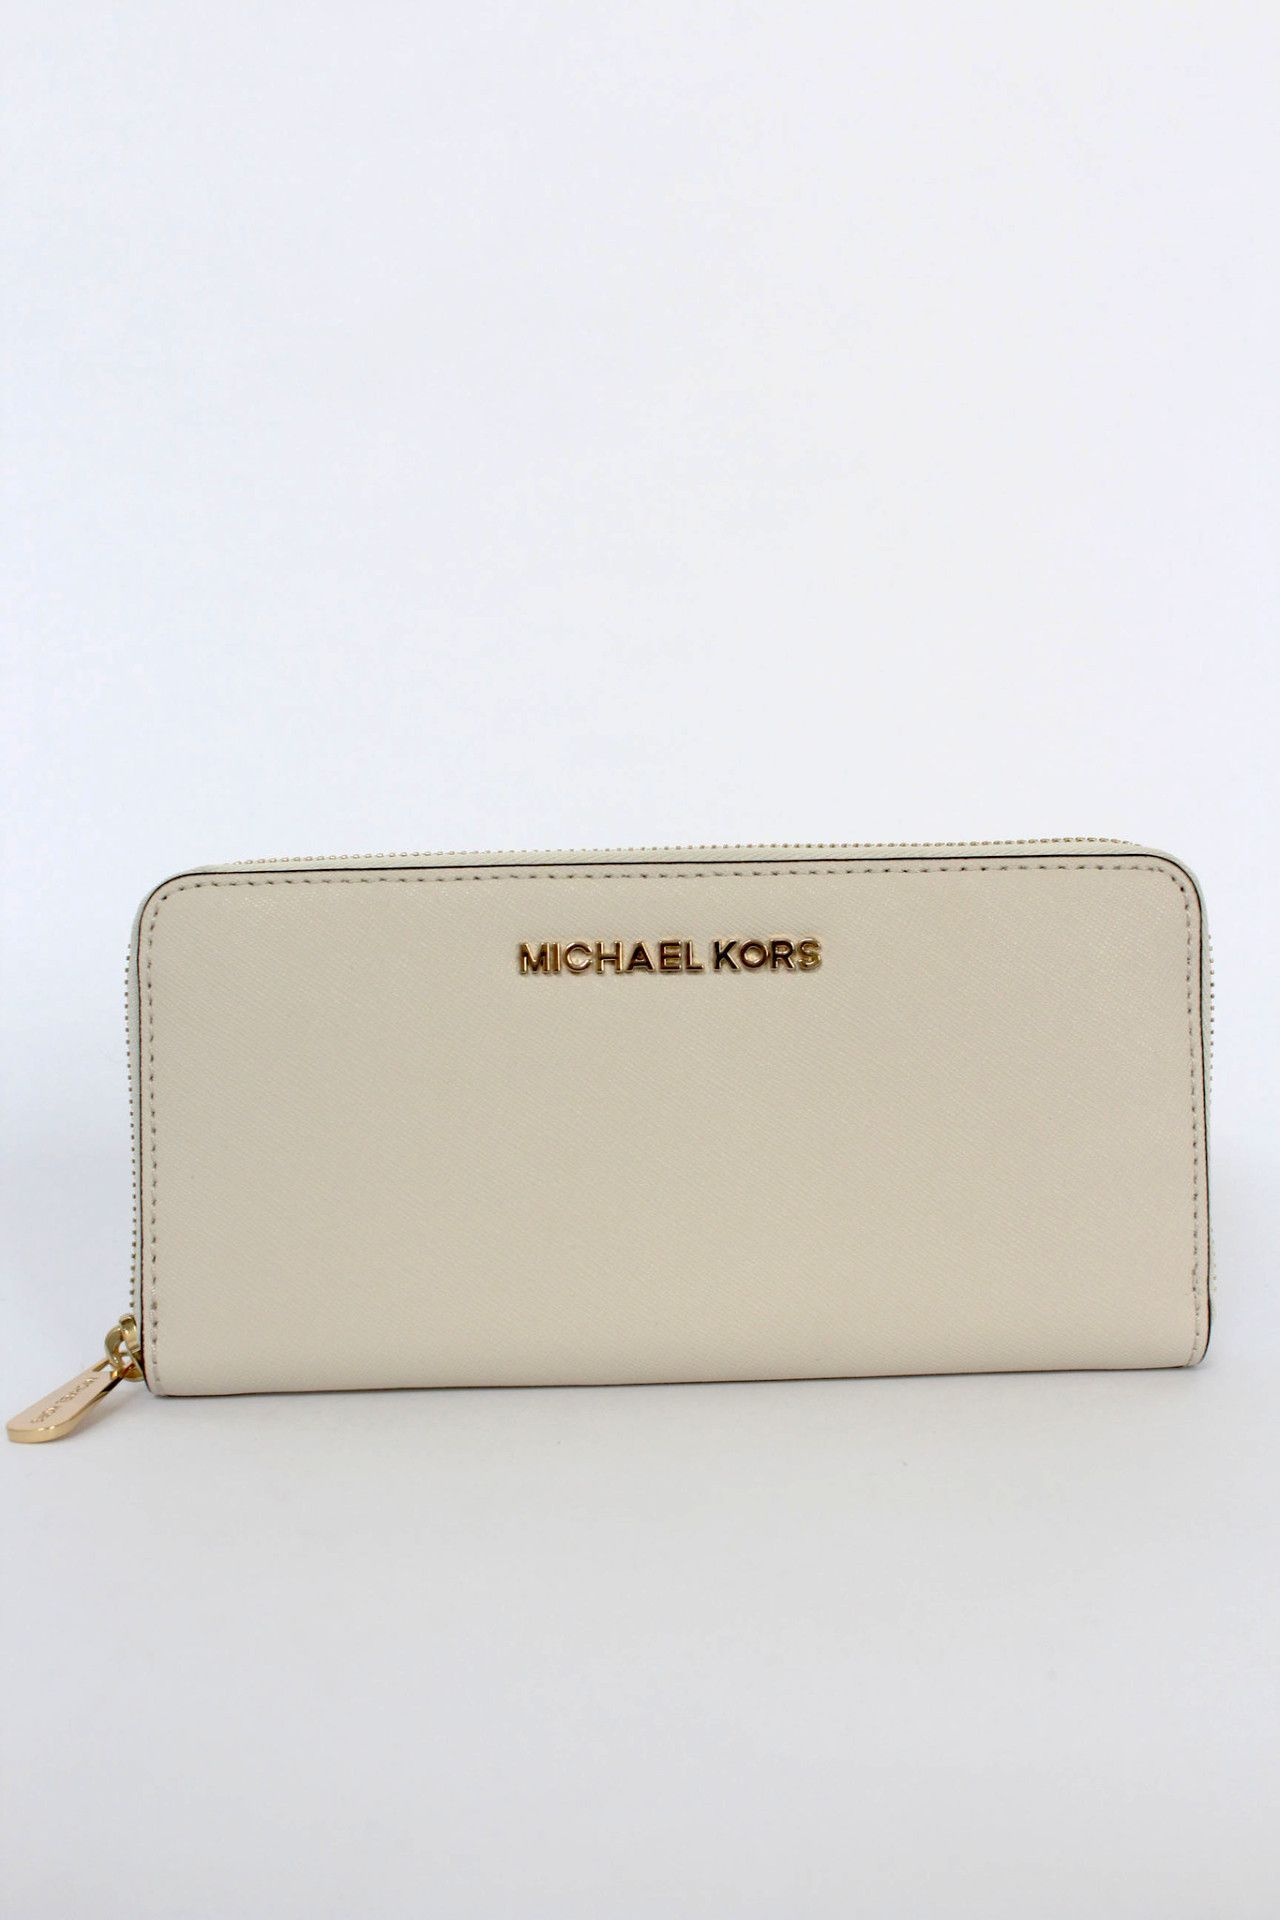 f454692a186c Michael Kors Jet Set cream saffiano leather zip around wallet with goldtone  hardware